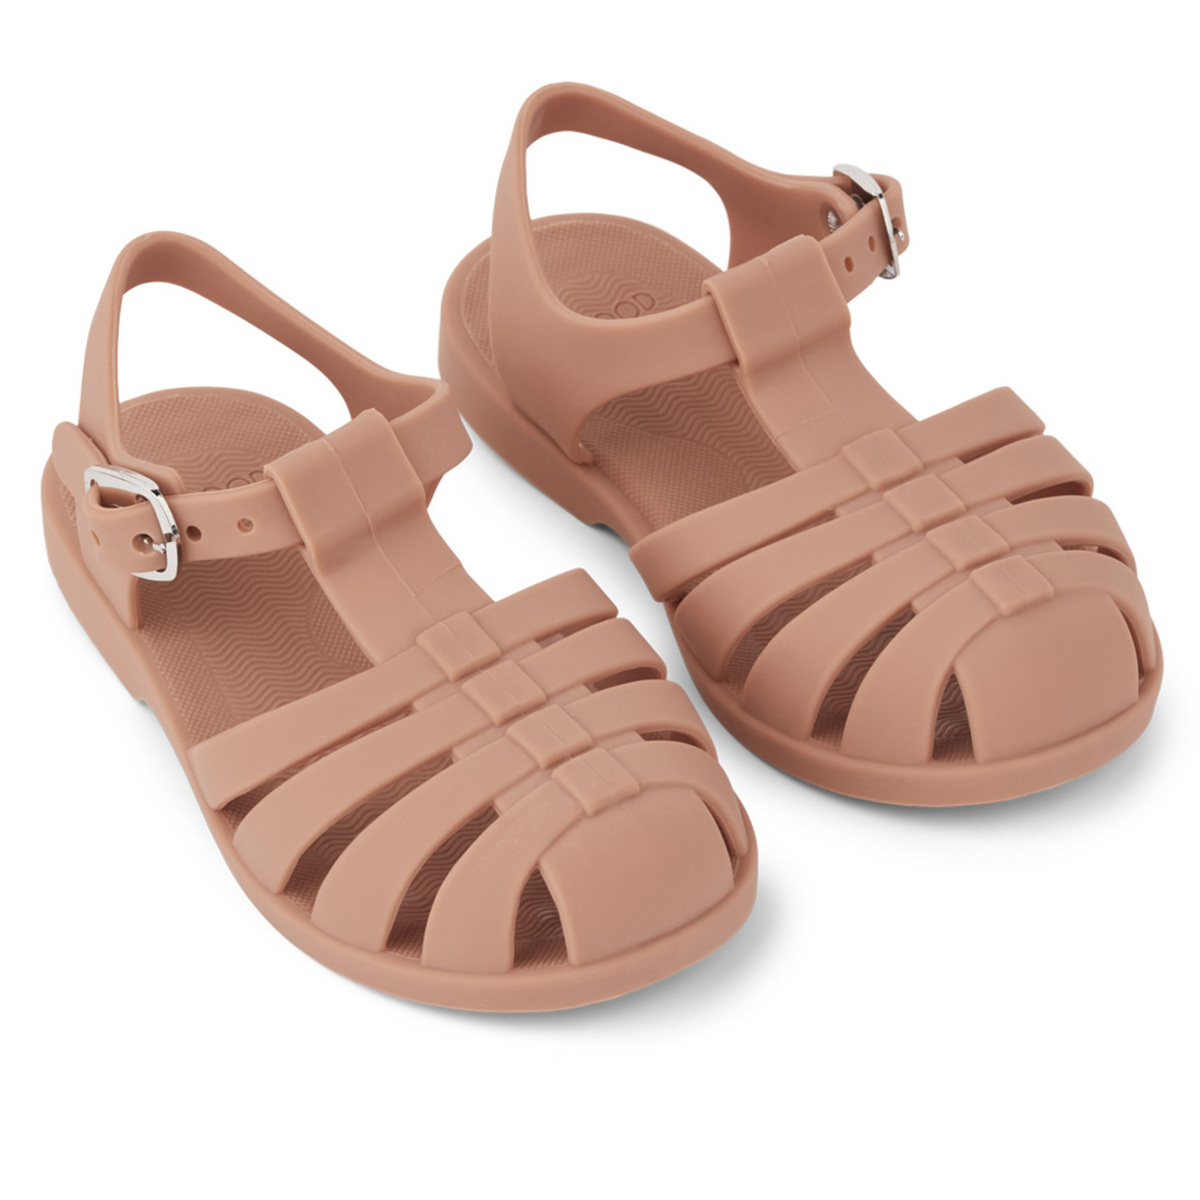 Chaussons & Chaussures Sandales Bre Tuscany Rose - 26 Sandales Bre Tuscany Rose - 26